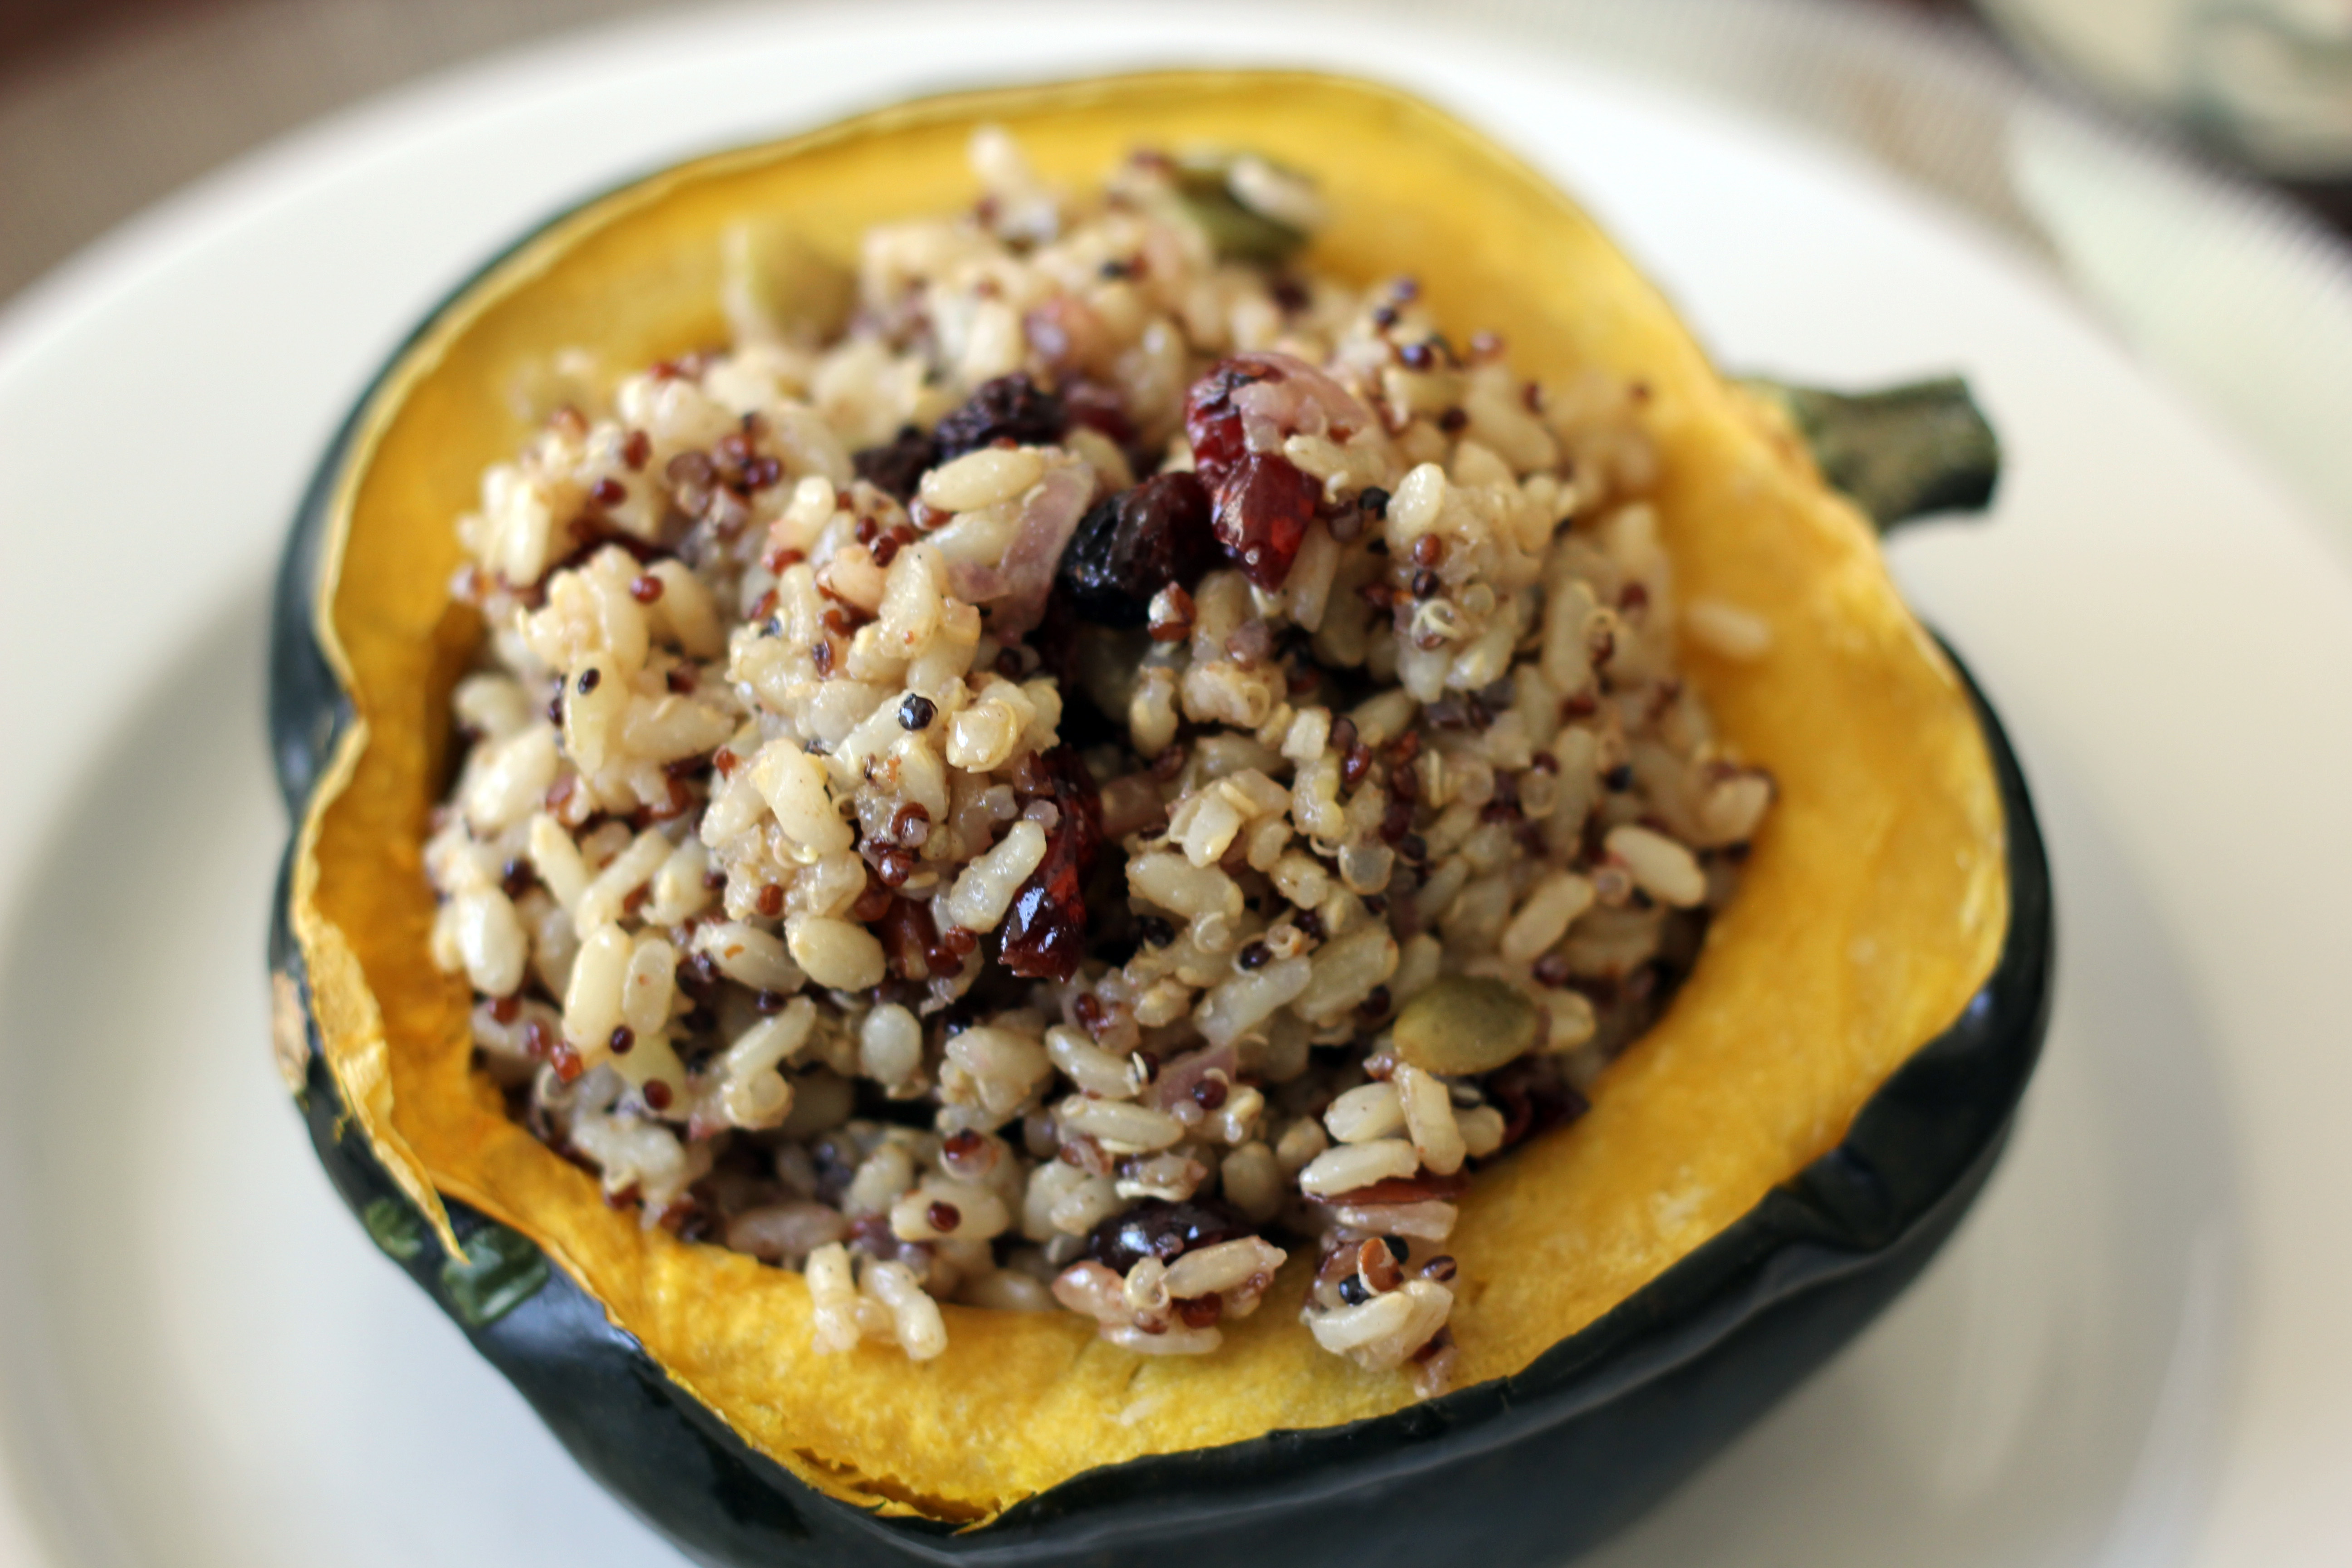 Roasted Acorn Squash with Cranberry Rice Medley